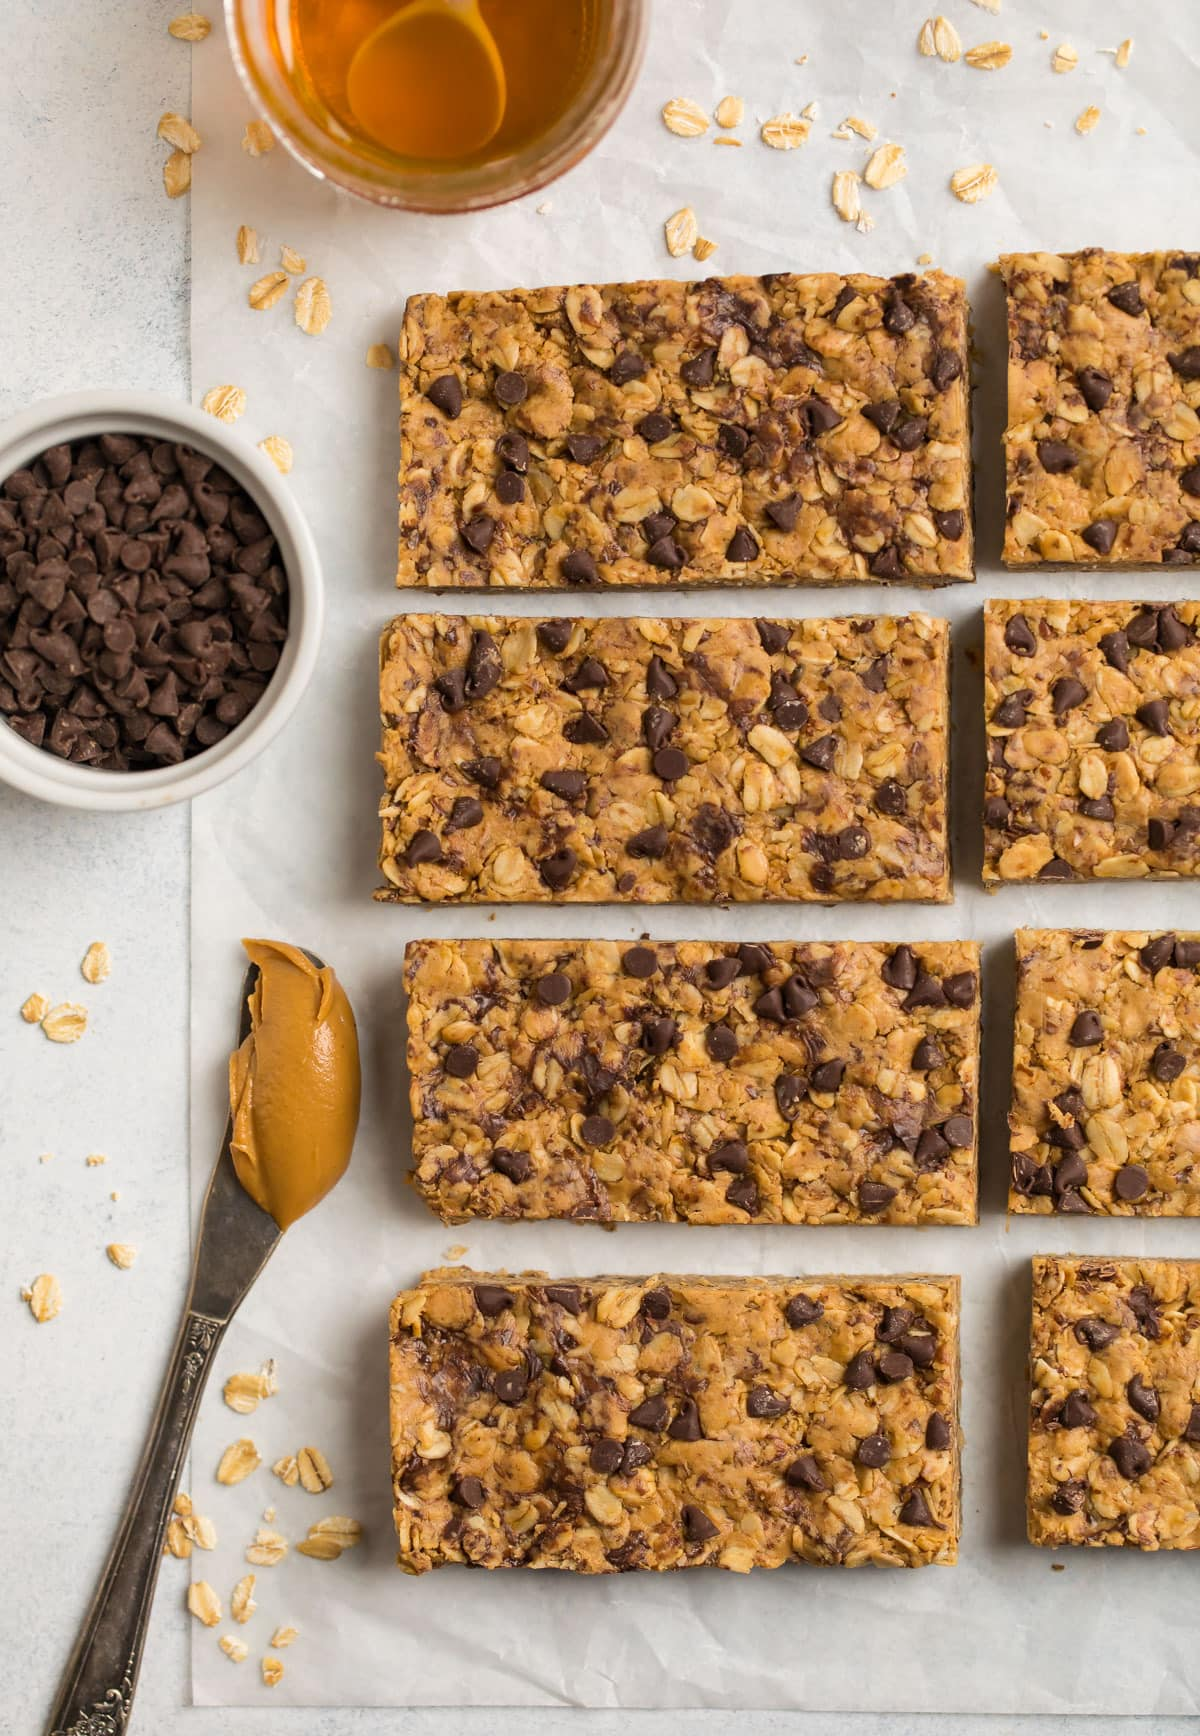 Peanut Butter Protein Bars. Soft, chewy, and made with wholesome ingredients.